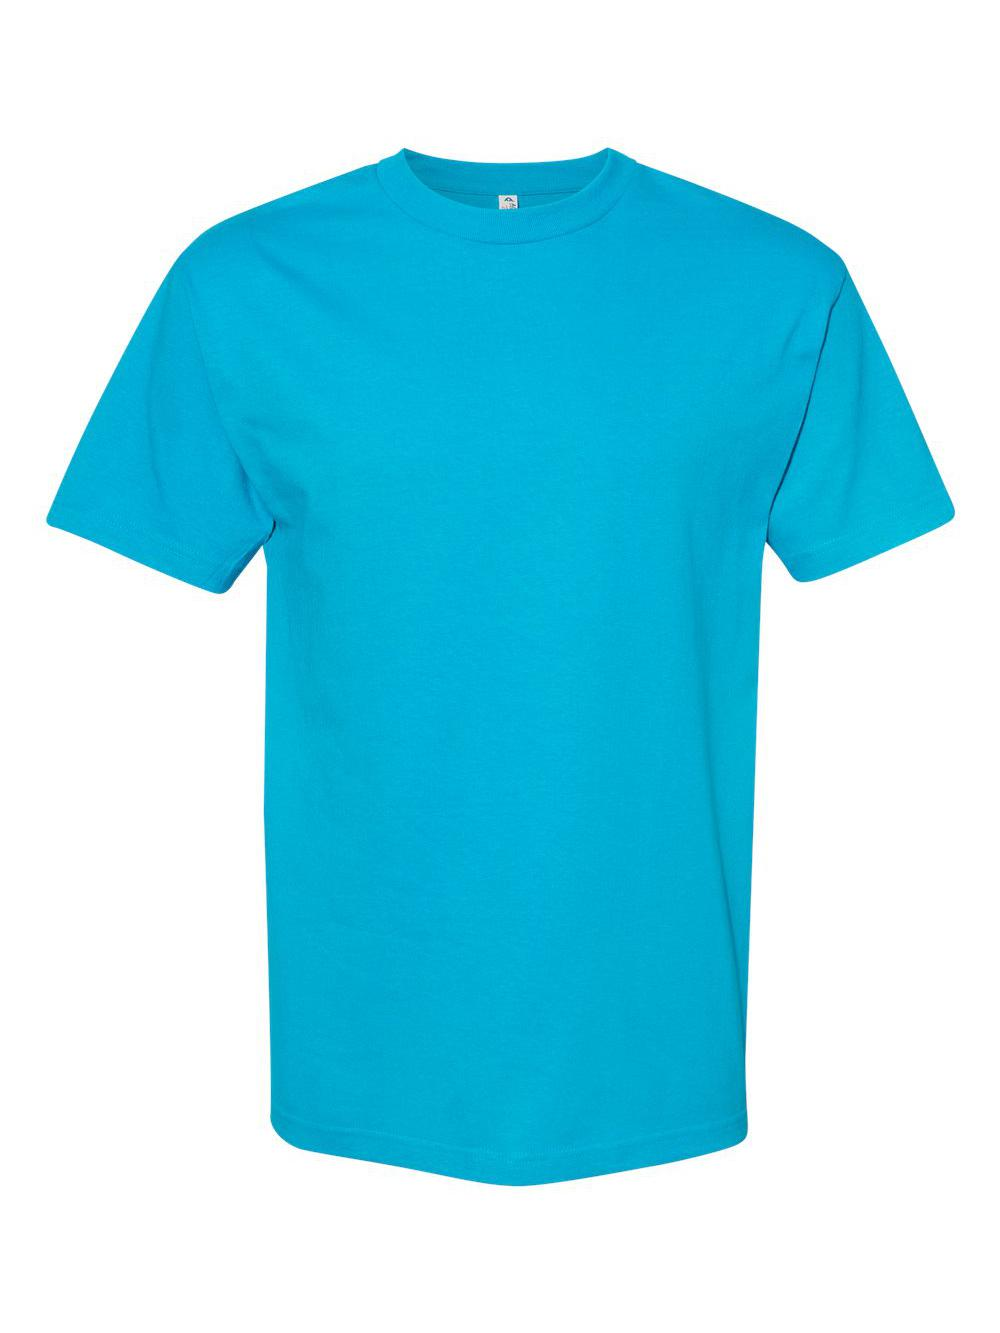 ALSTYLE-Classic-T-Shirt-1301 thumbnail 83